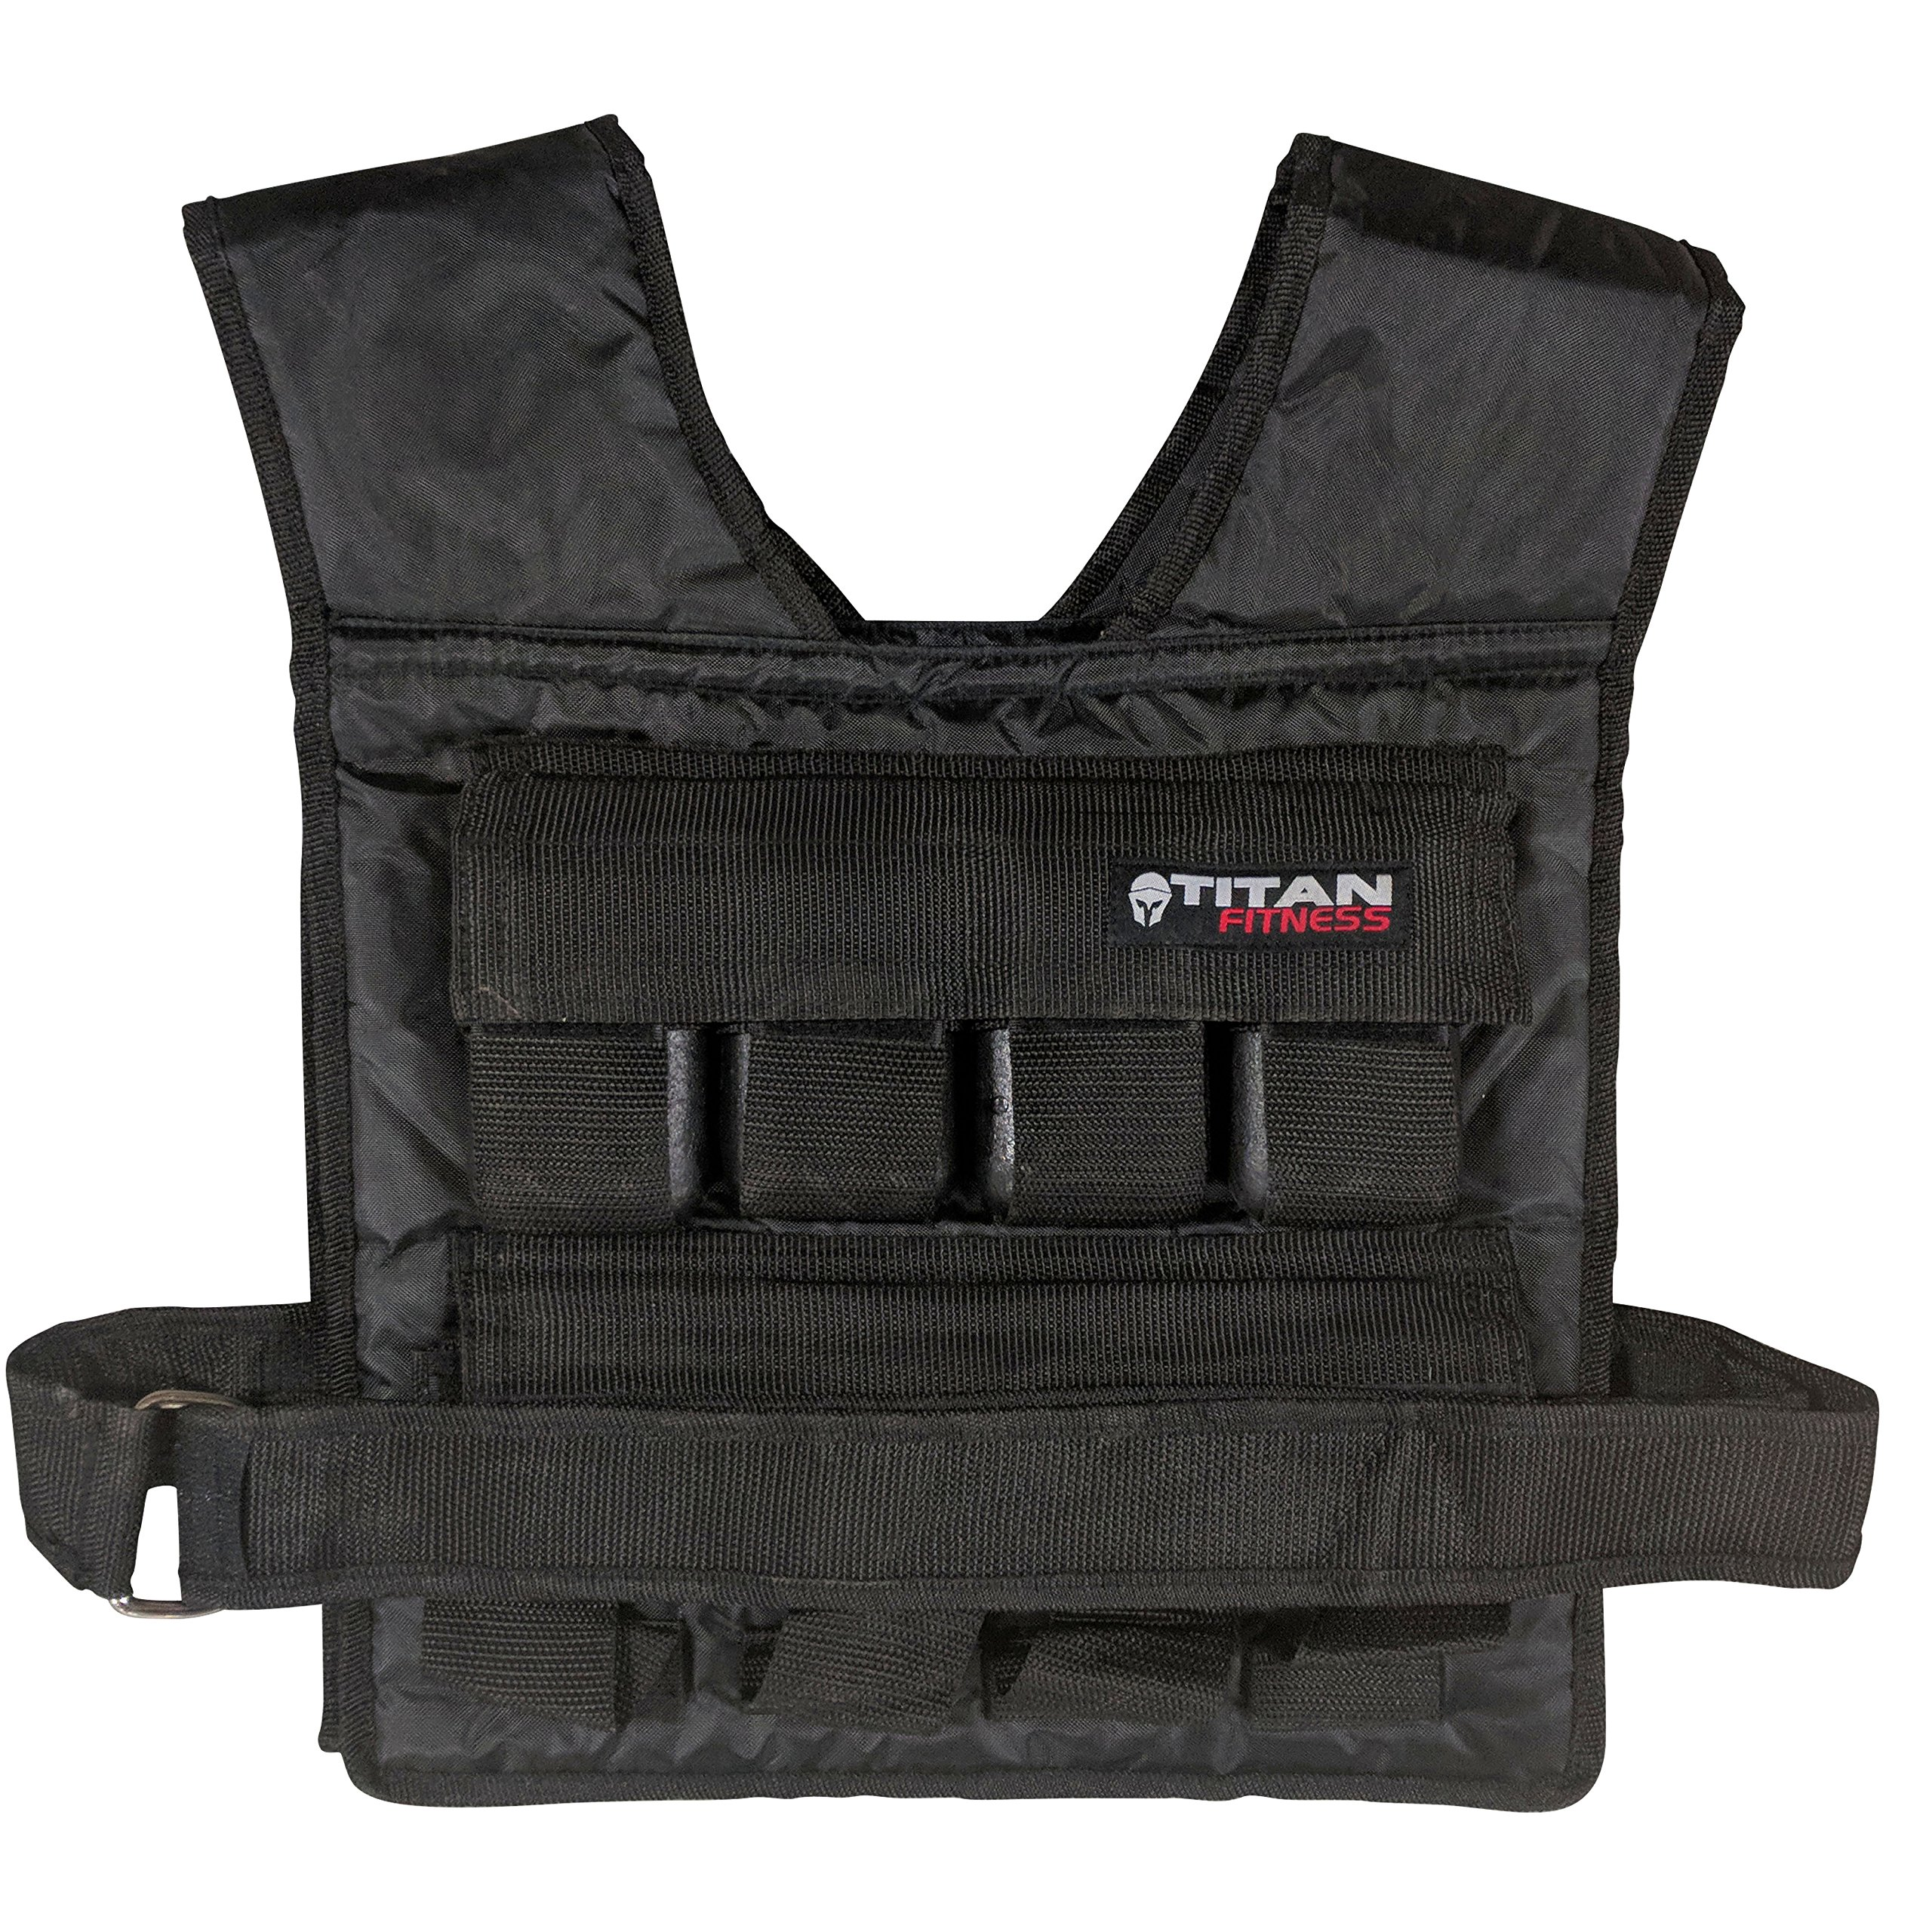 Titan Adjustable Weighted Vest 20 LB